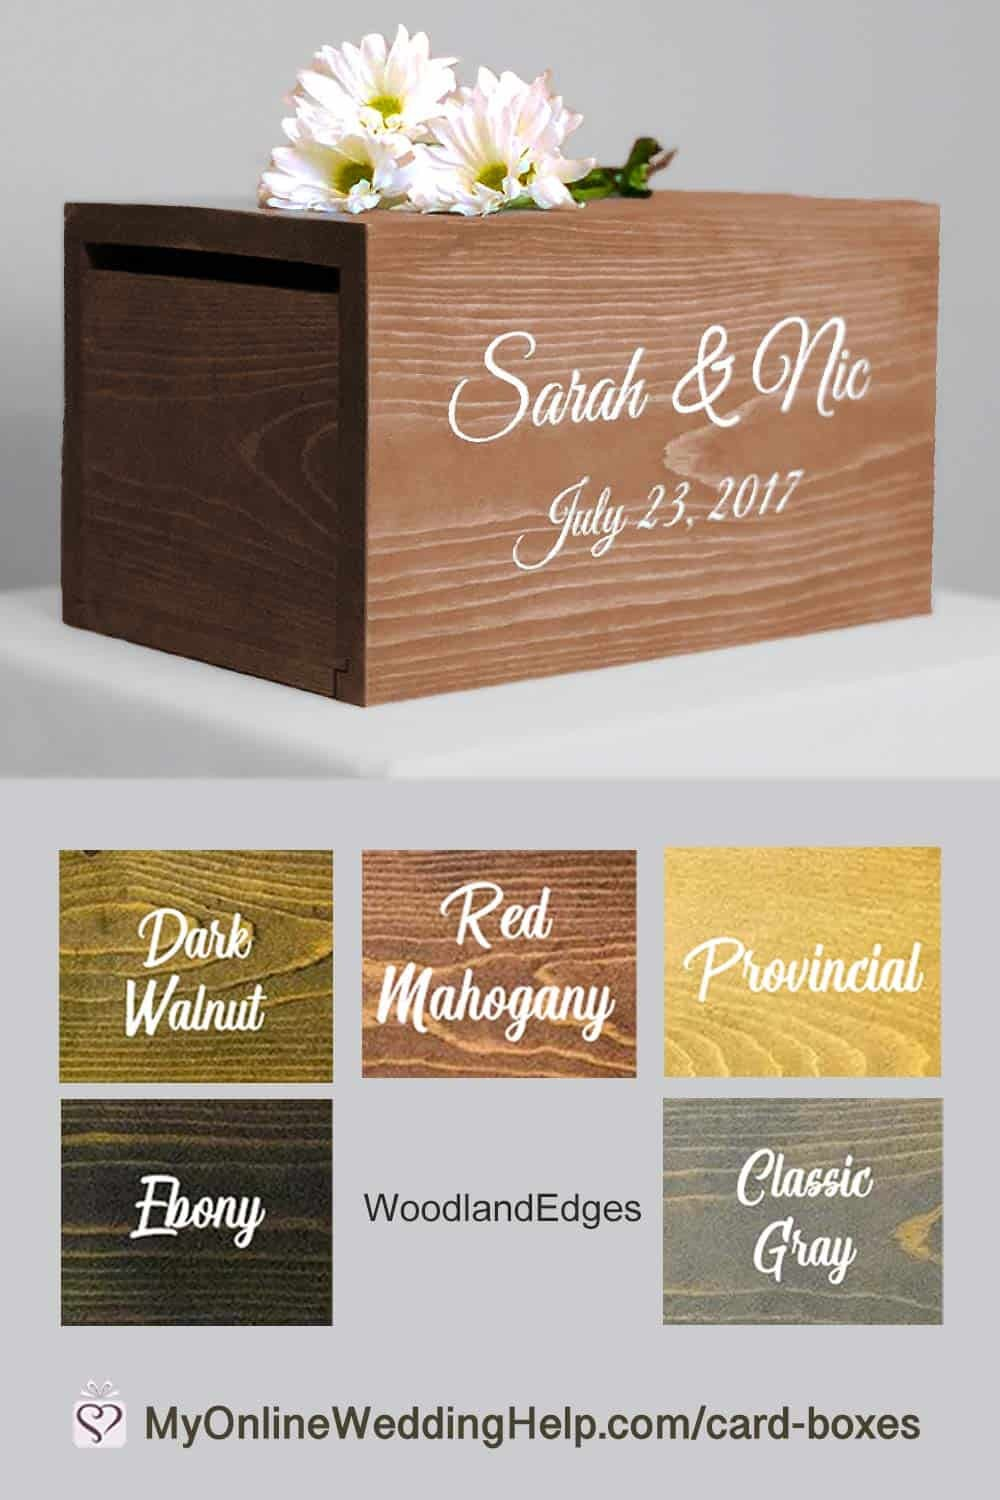 Wooden card box for rustic wedding reception. Choose from four sizes and five stains. Prices start at $44.00. See more info or buy in the My Online Wedding Help products section.